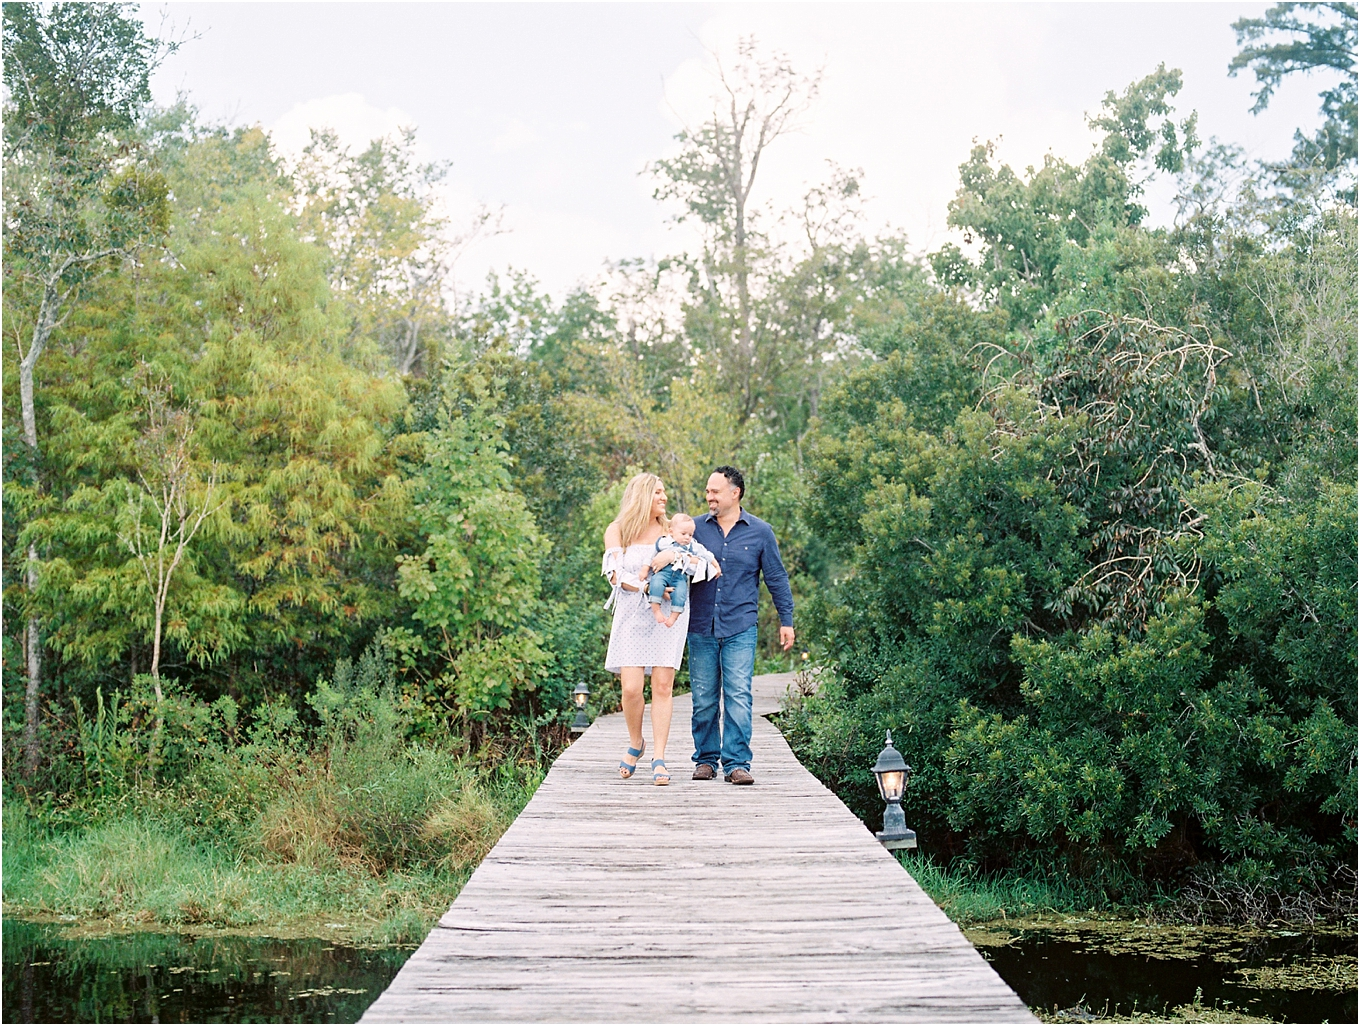 Lisa Silva Photography- Ponte Vedra Beach, St. Augustine and Jacksonville, Florida Fine Art Film Wedding and Boudoir Photography-  Lifestyle Session at Home_0004a.jpg